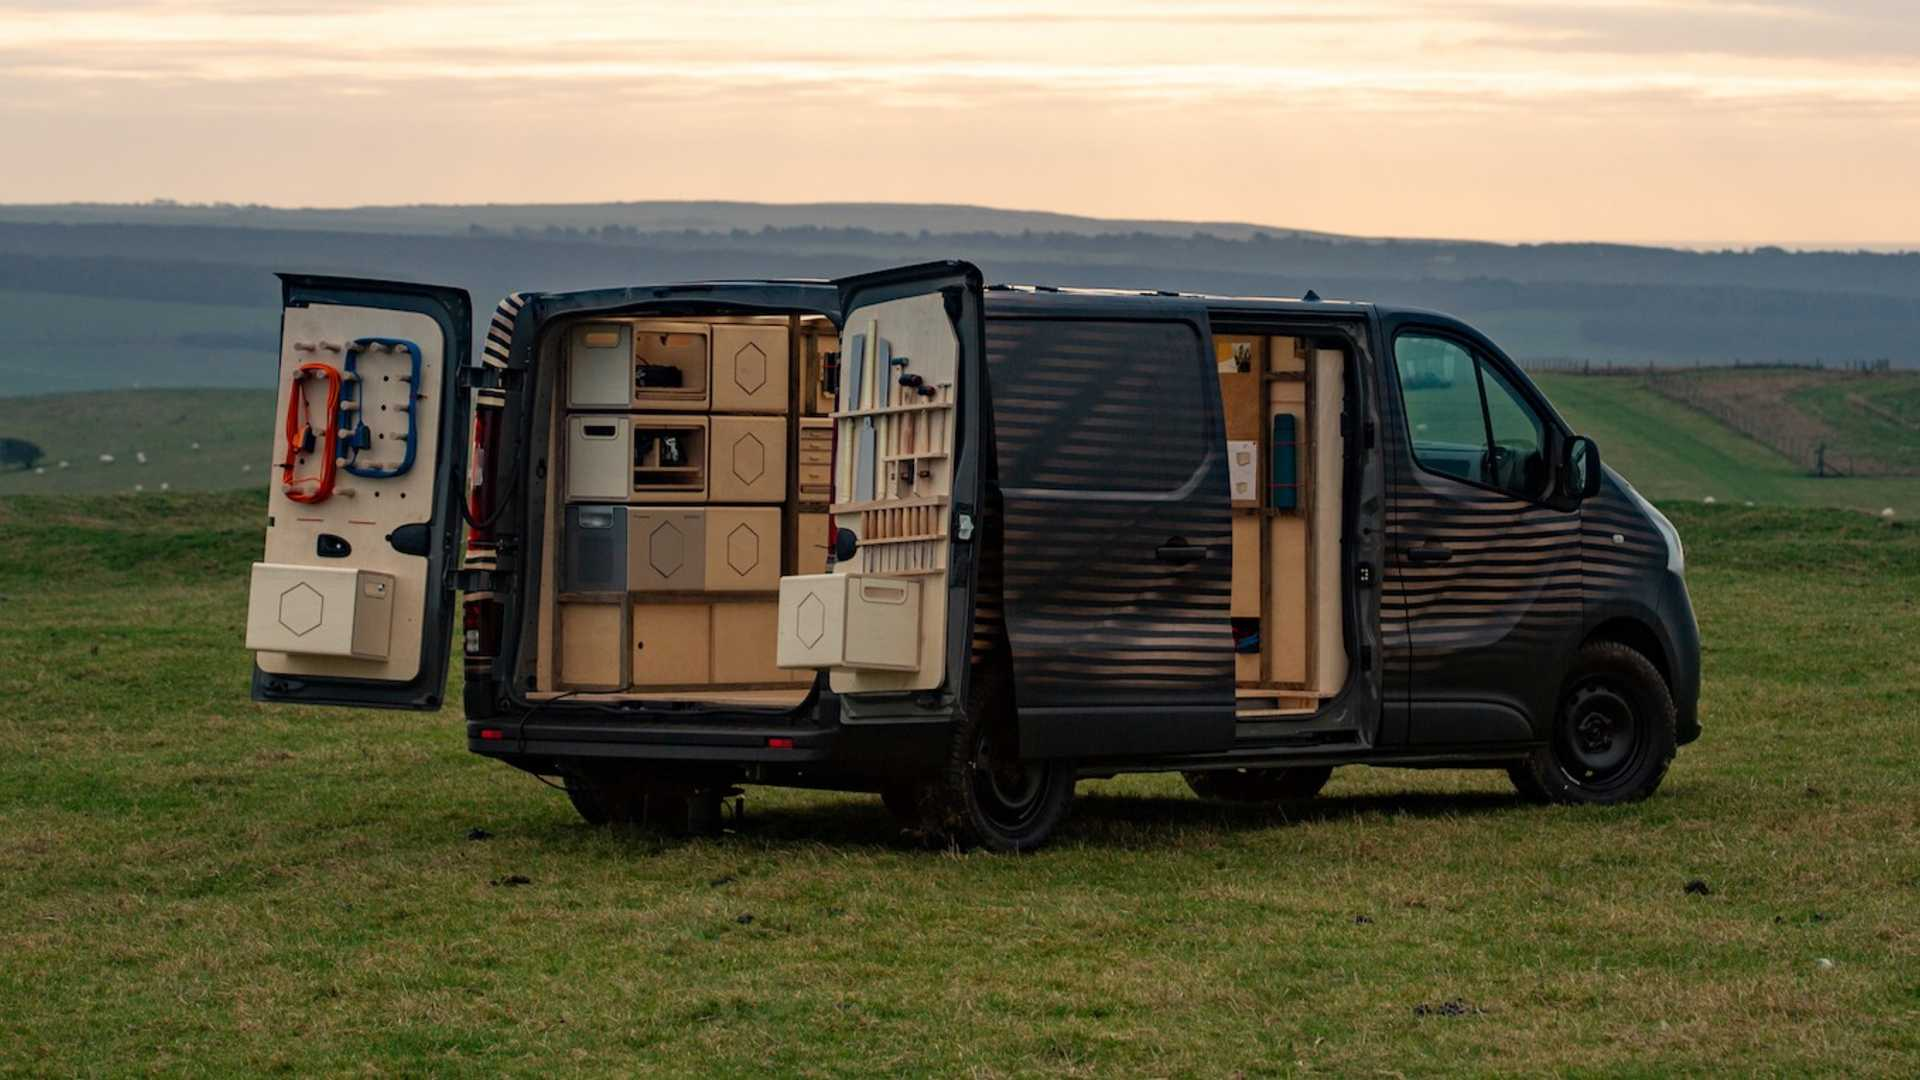 Japanese car manufacturer Nissan has used the ongoing Brussels Motor Show as an opportunity to showcase a carpenter's van concept based on its NV300 MPV